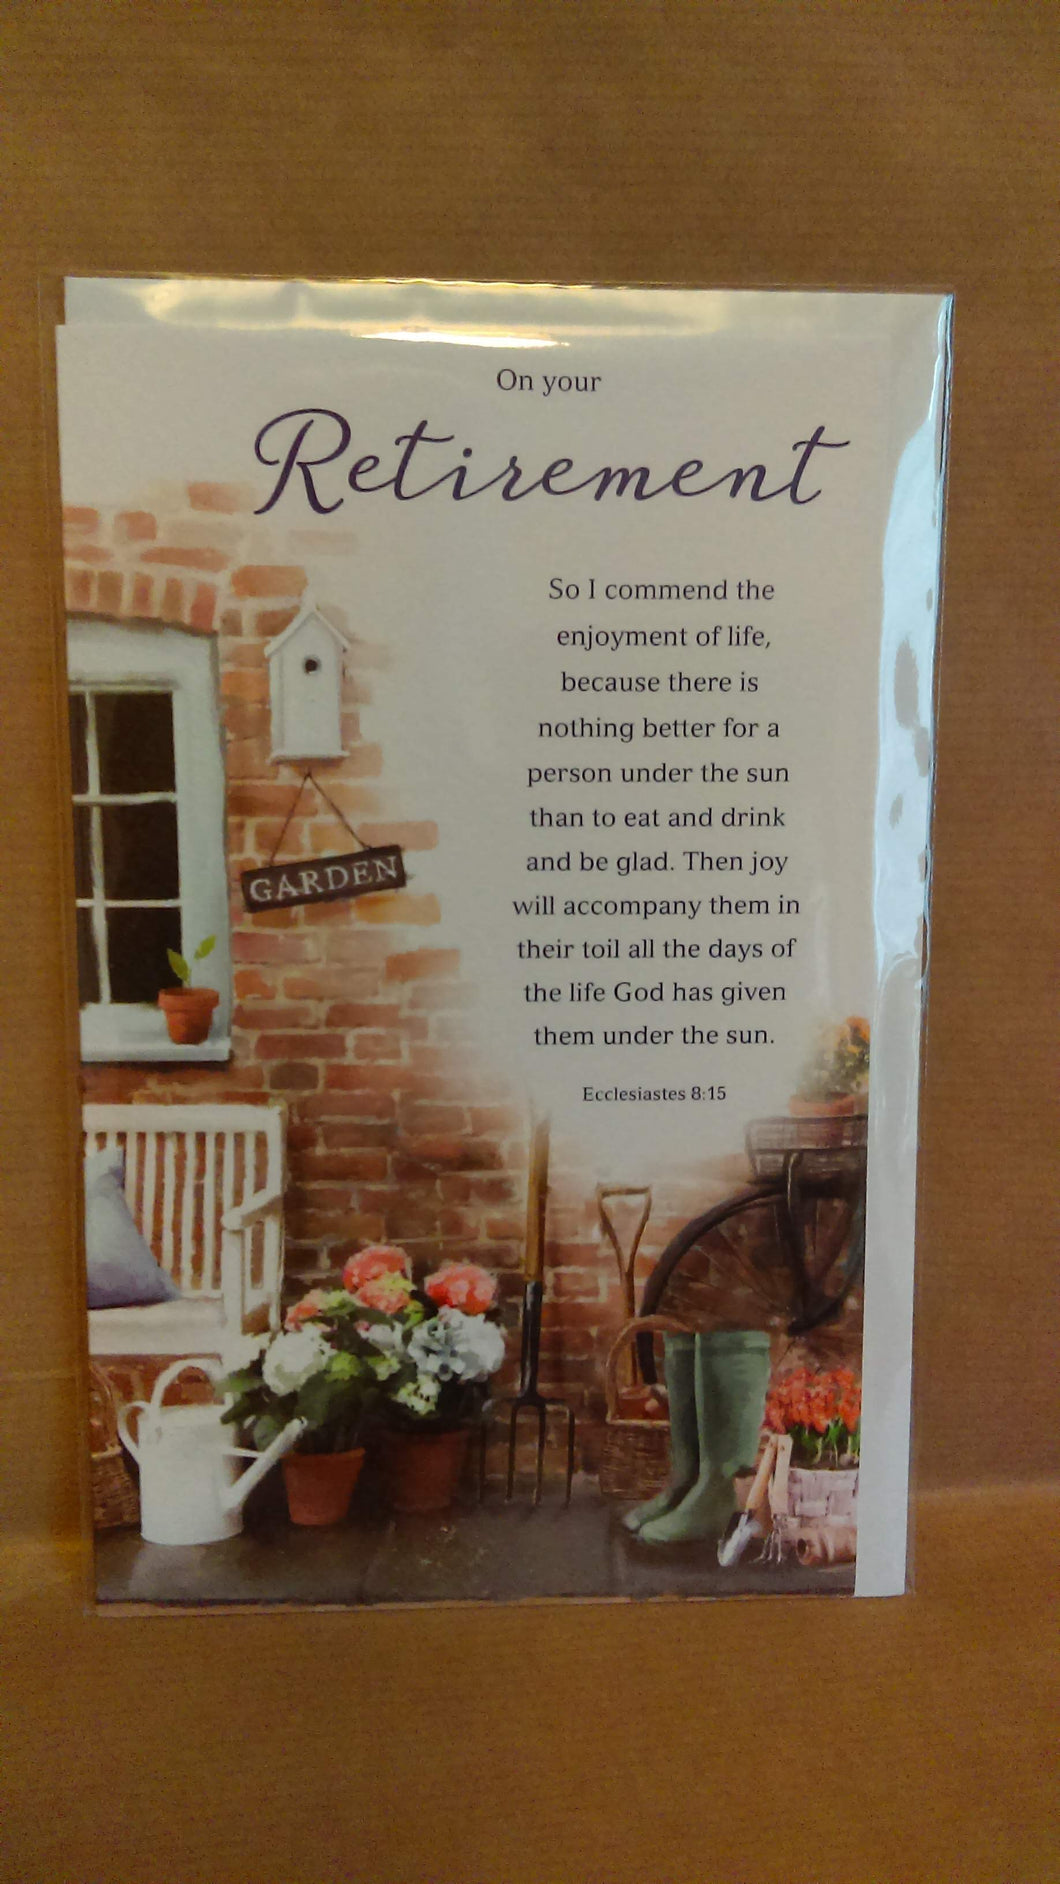 Retirement On your Retirement